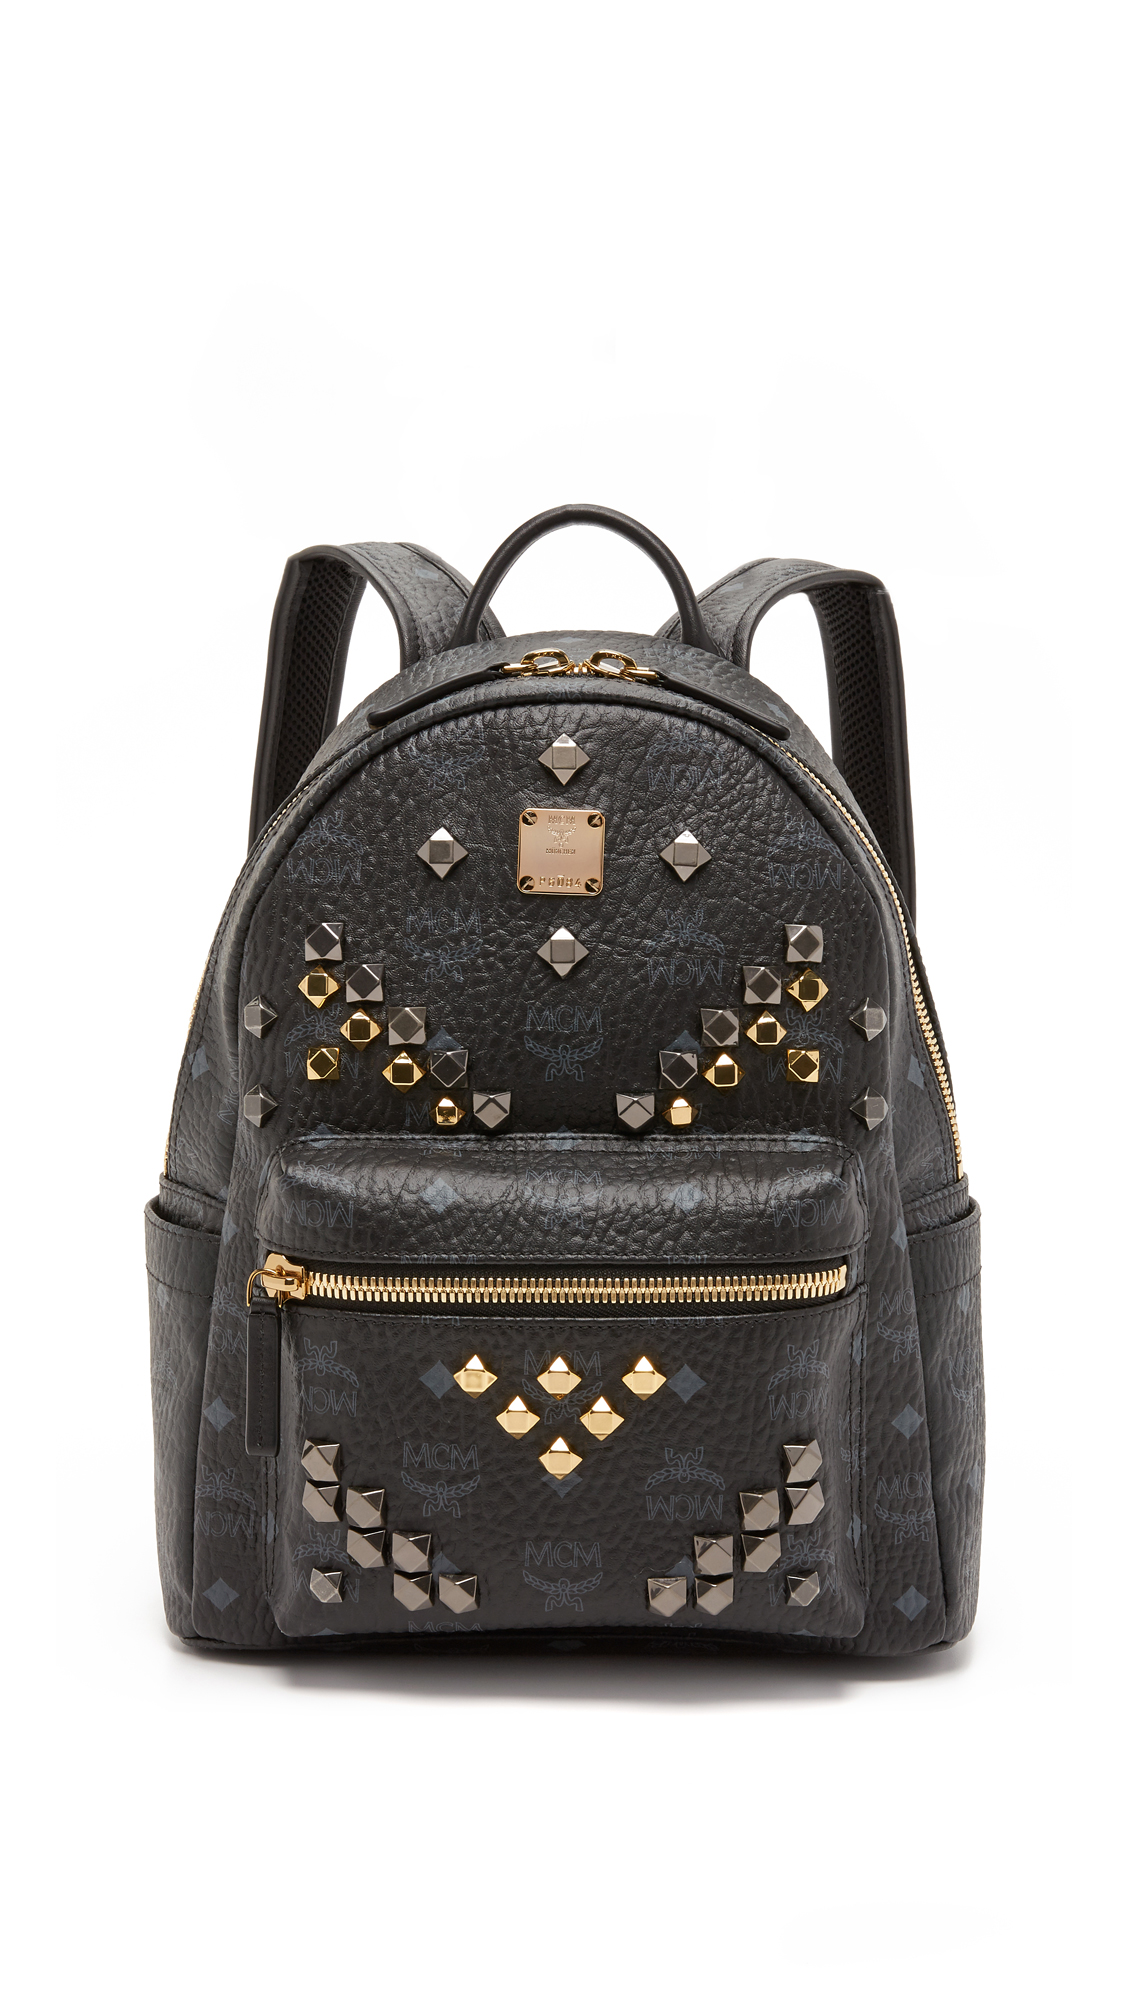 Multifaceted mixed metal studs dot the front of this monogrammed MCM backpack. Zip front pocket and slim side pockets. Wraparound top zip and unlined, 1 pocket interior. Locker loop and adjustable shoulder straps. Dust bag included. Fabric: